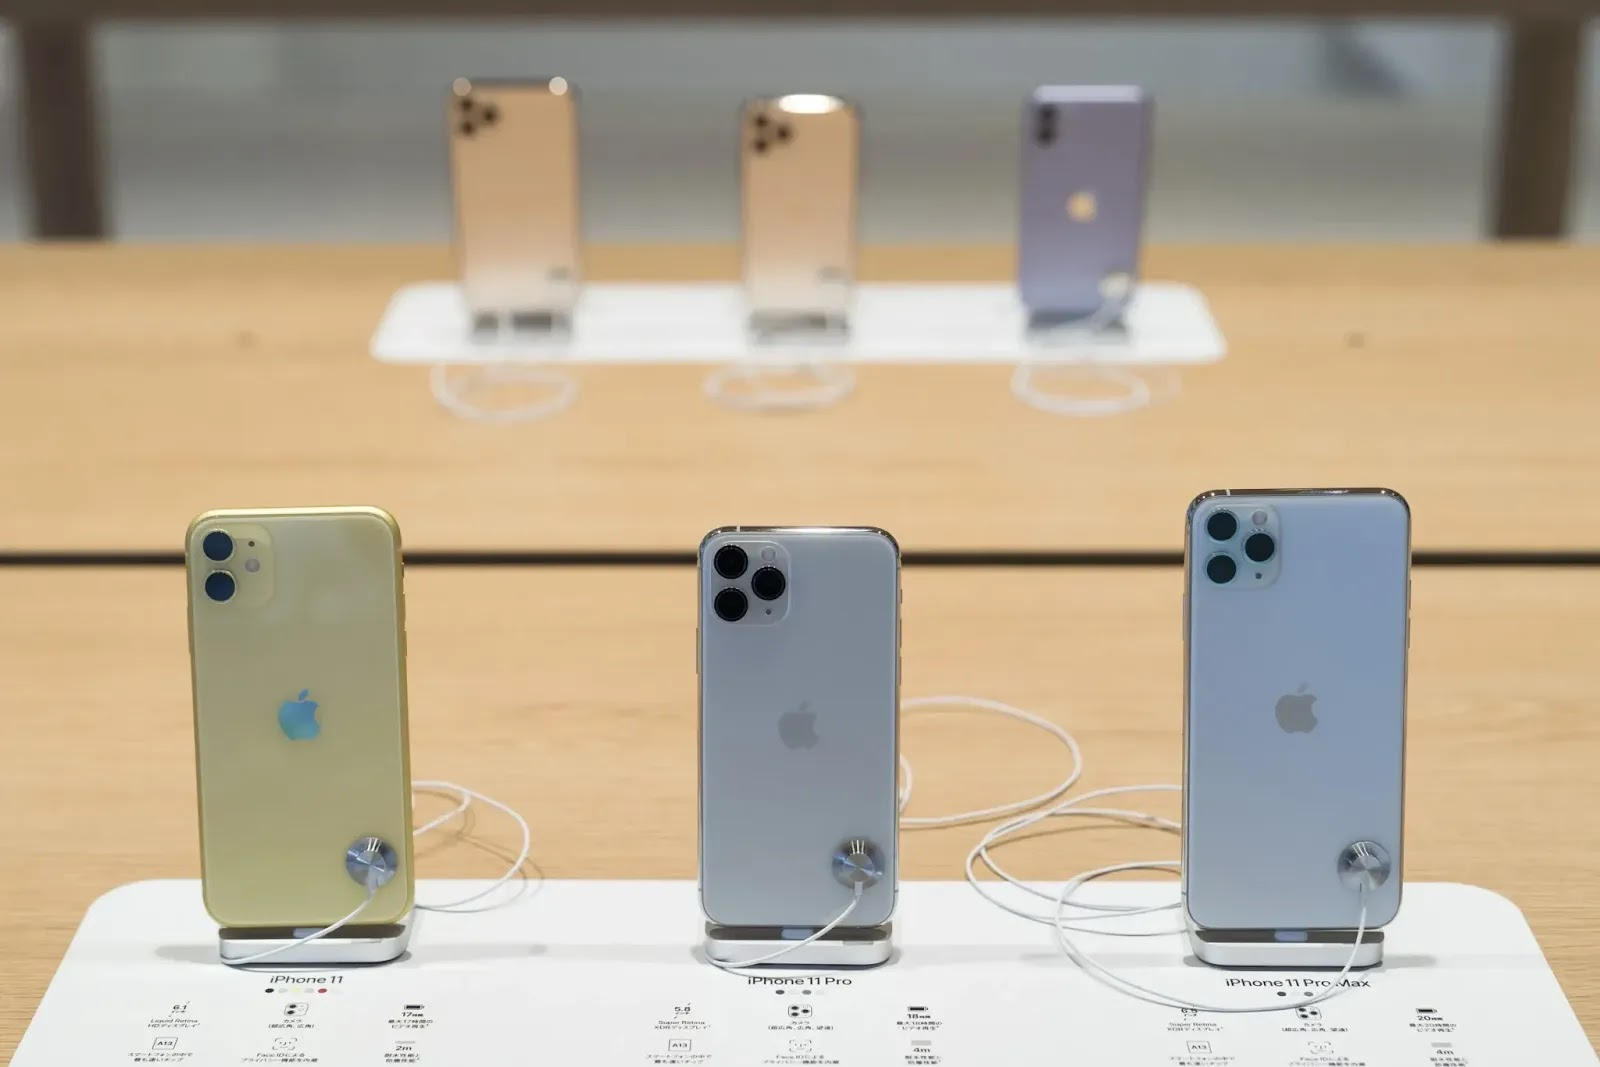 iPhone models later this year